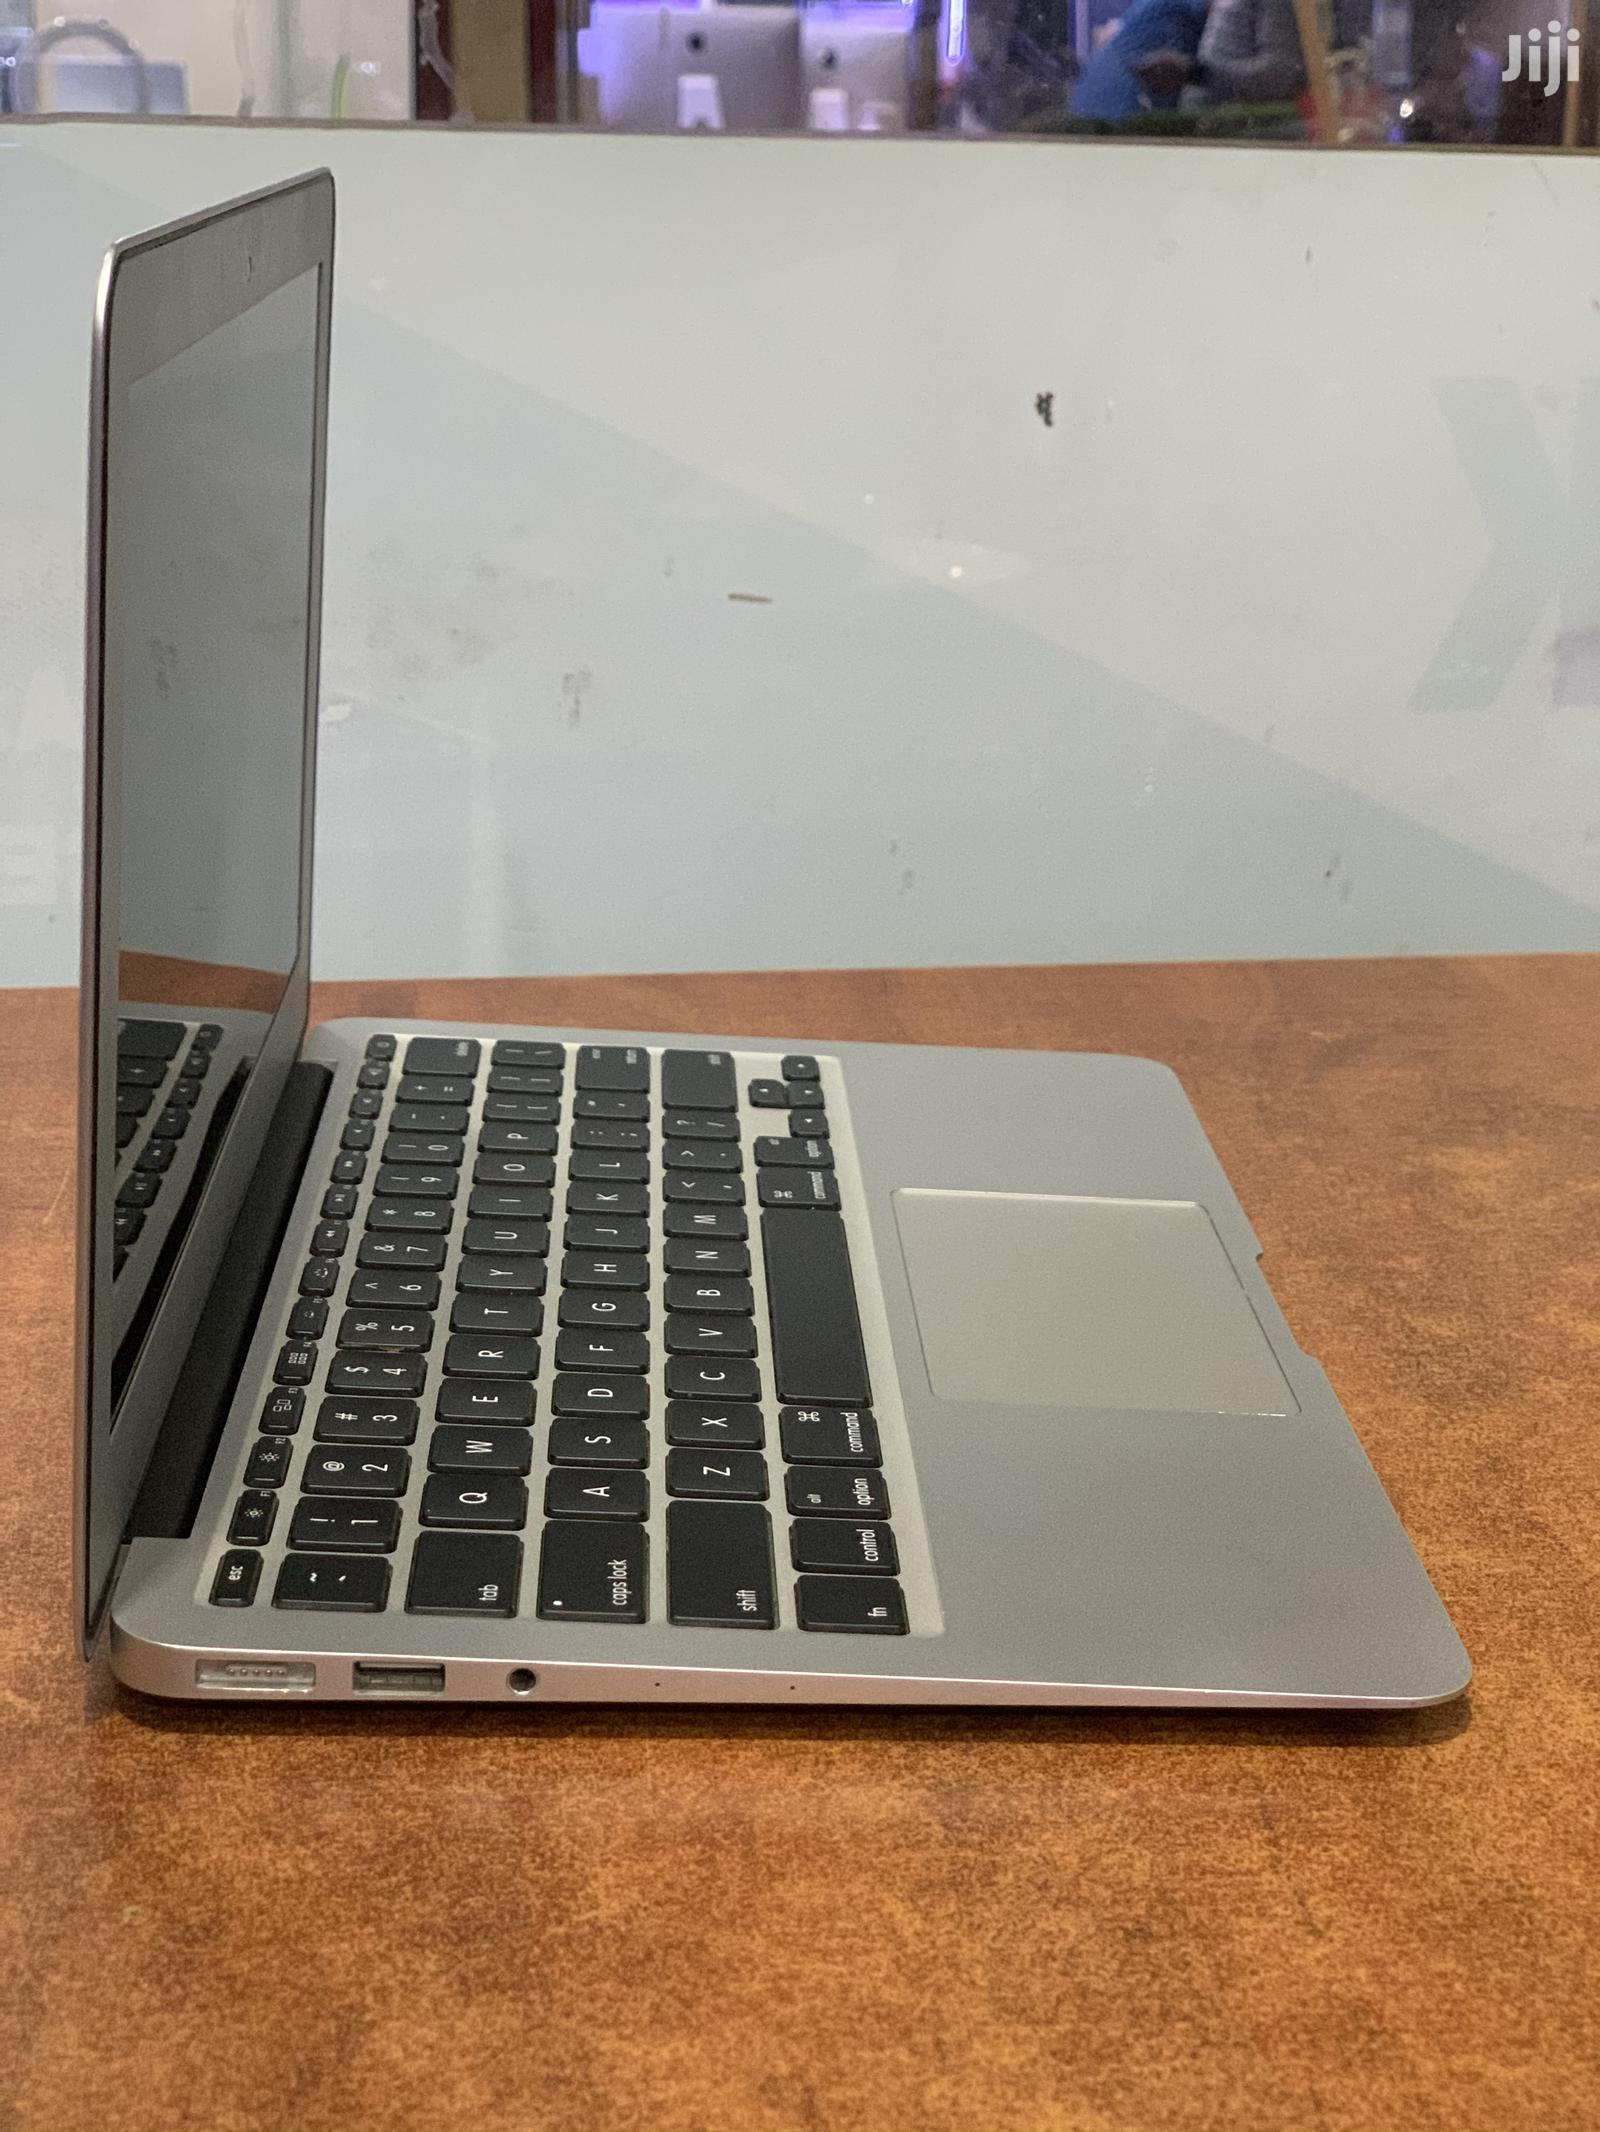 Laptop Apple MacBook Air 4GB Intel Core I5 SSHD (Hybrid) 128GB | Laptops & Computers for sale in Kampala, Central Region, Uganda